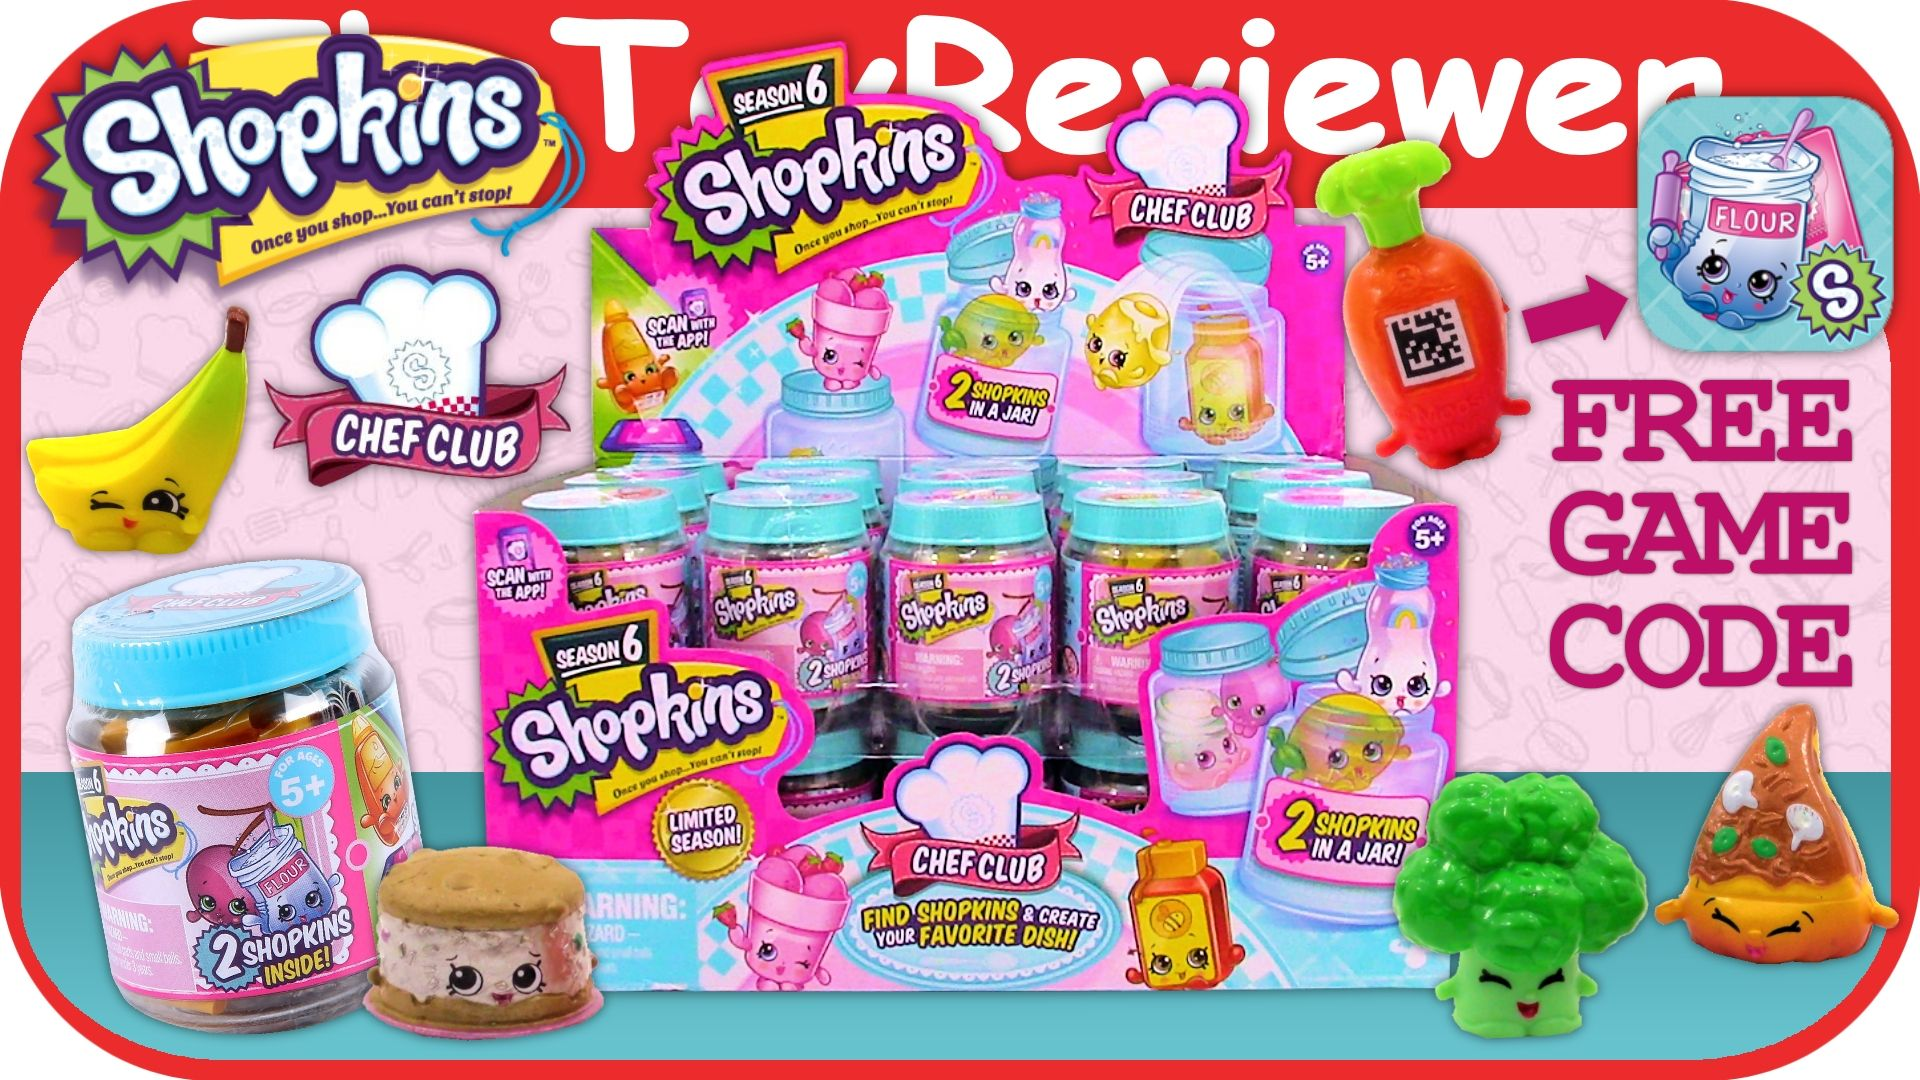 Check out this full case of Shopkins Chef Club Blind Bags here: https://www.youtube.com/watch?v=67GqTKE8pss